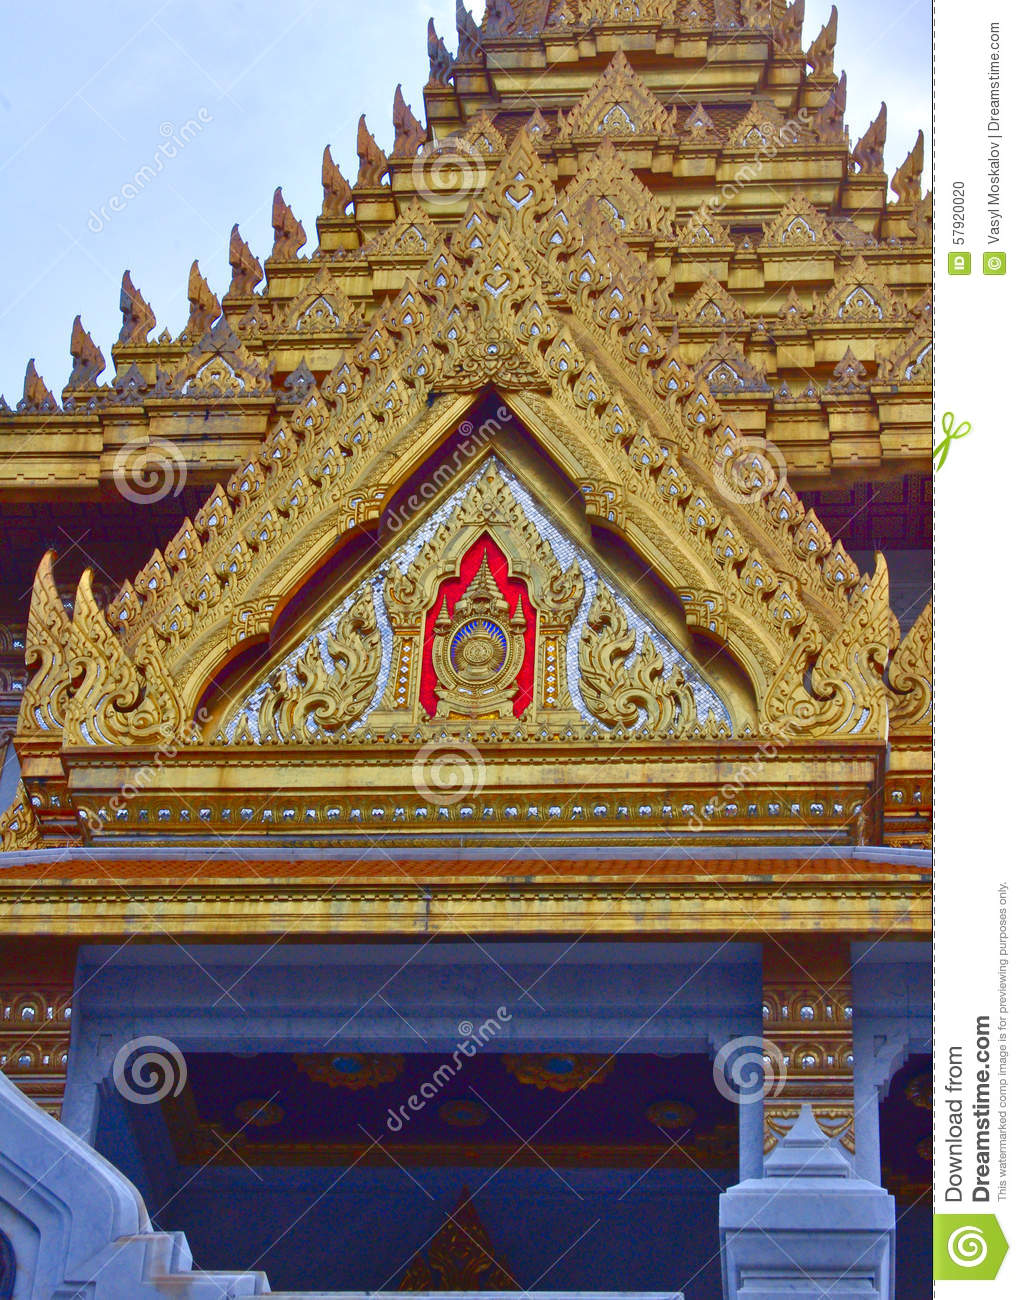 The Decor Items Of Golden Buddha Temple Stock Photo Image Of Near